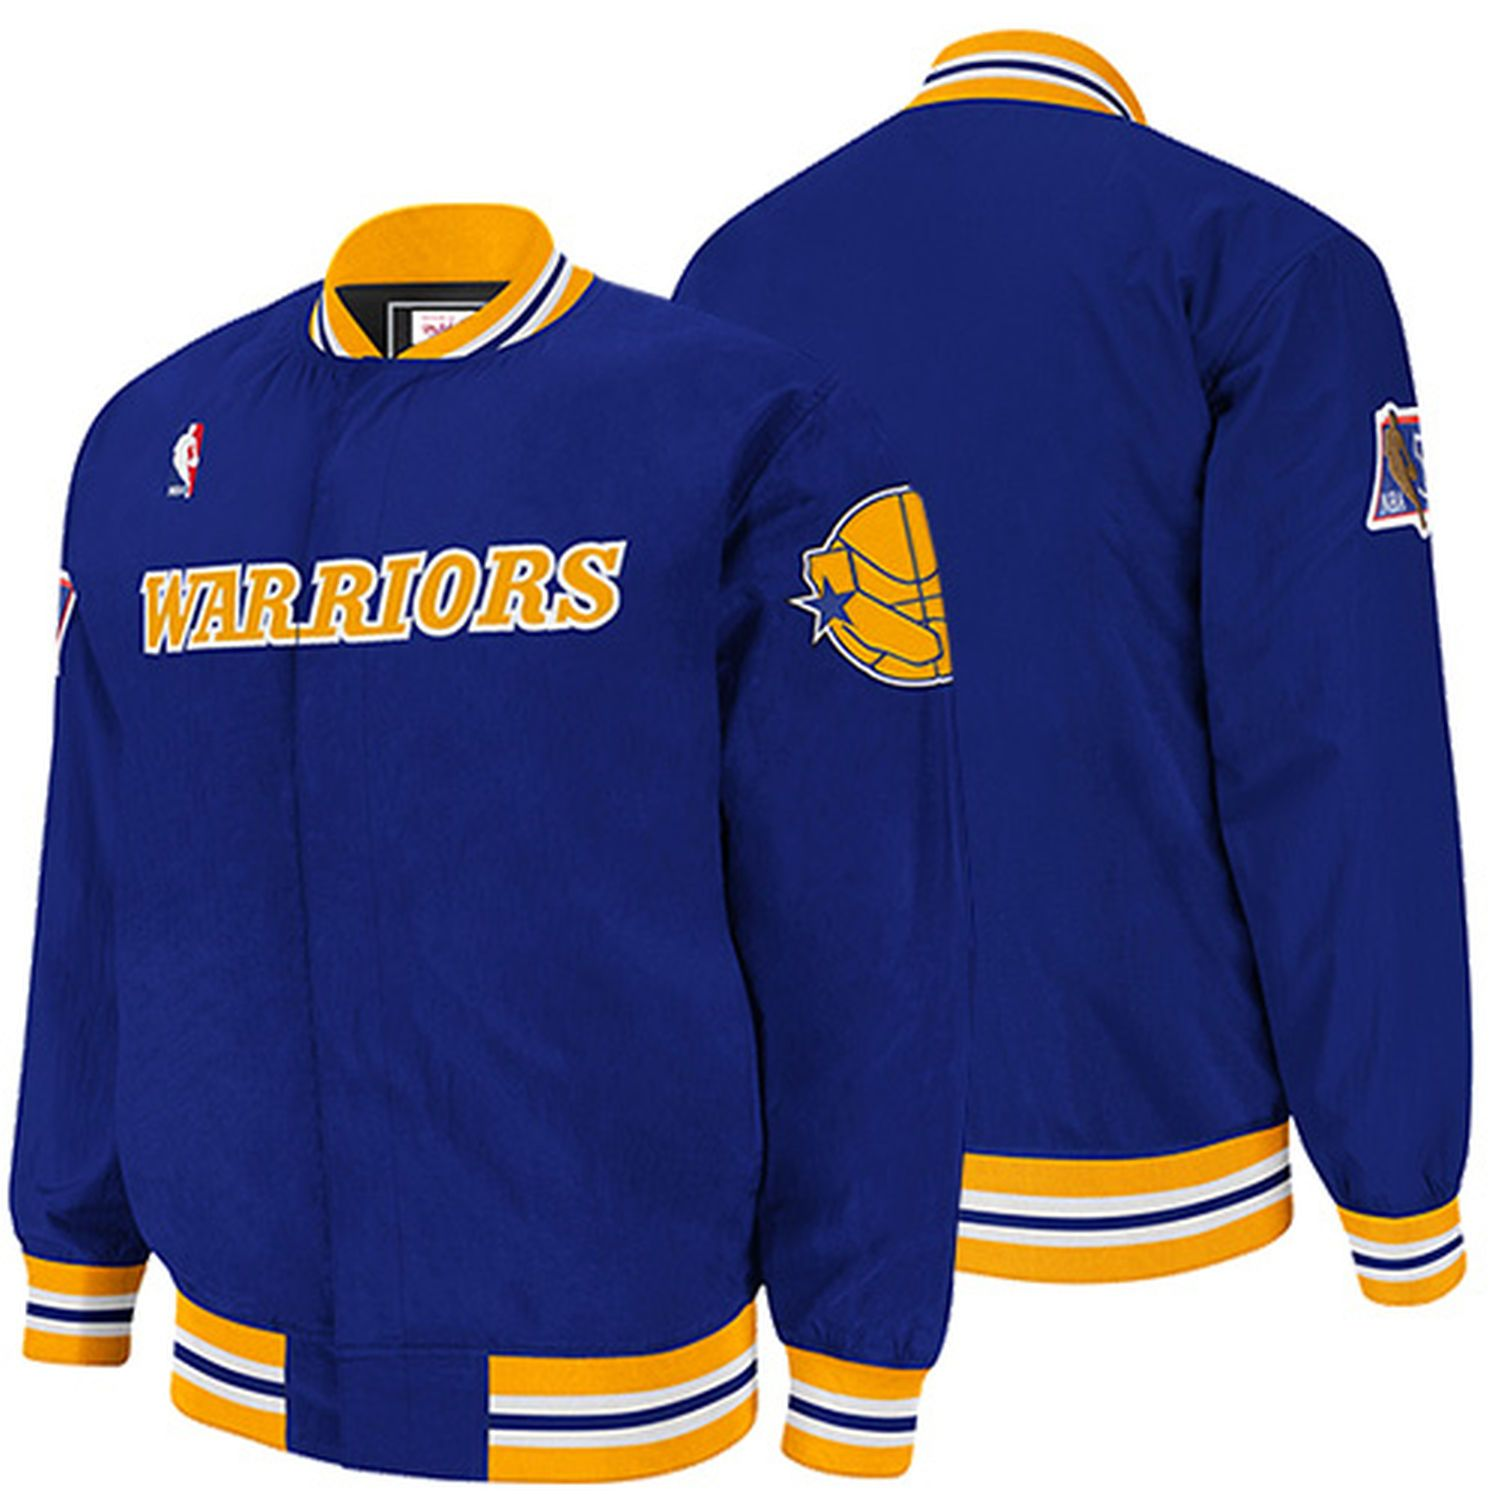 Mitchell Ness Golden State Warriors Authentic Vintage Warm Up Jacket Royal Blue Nba Clothing Mitchell Ness Golden State Warriors